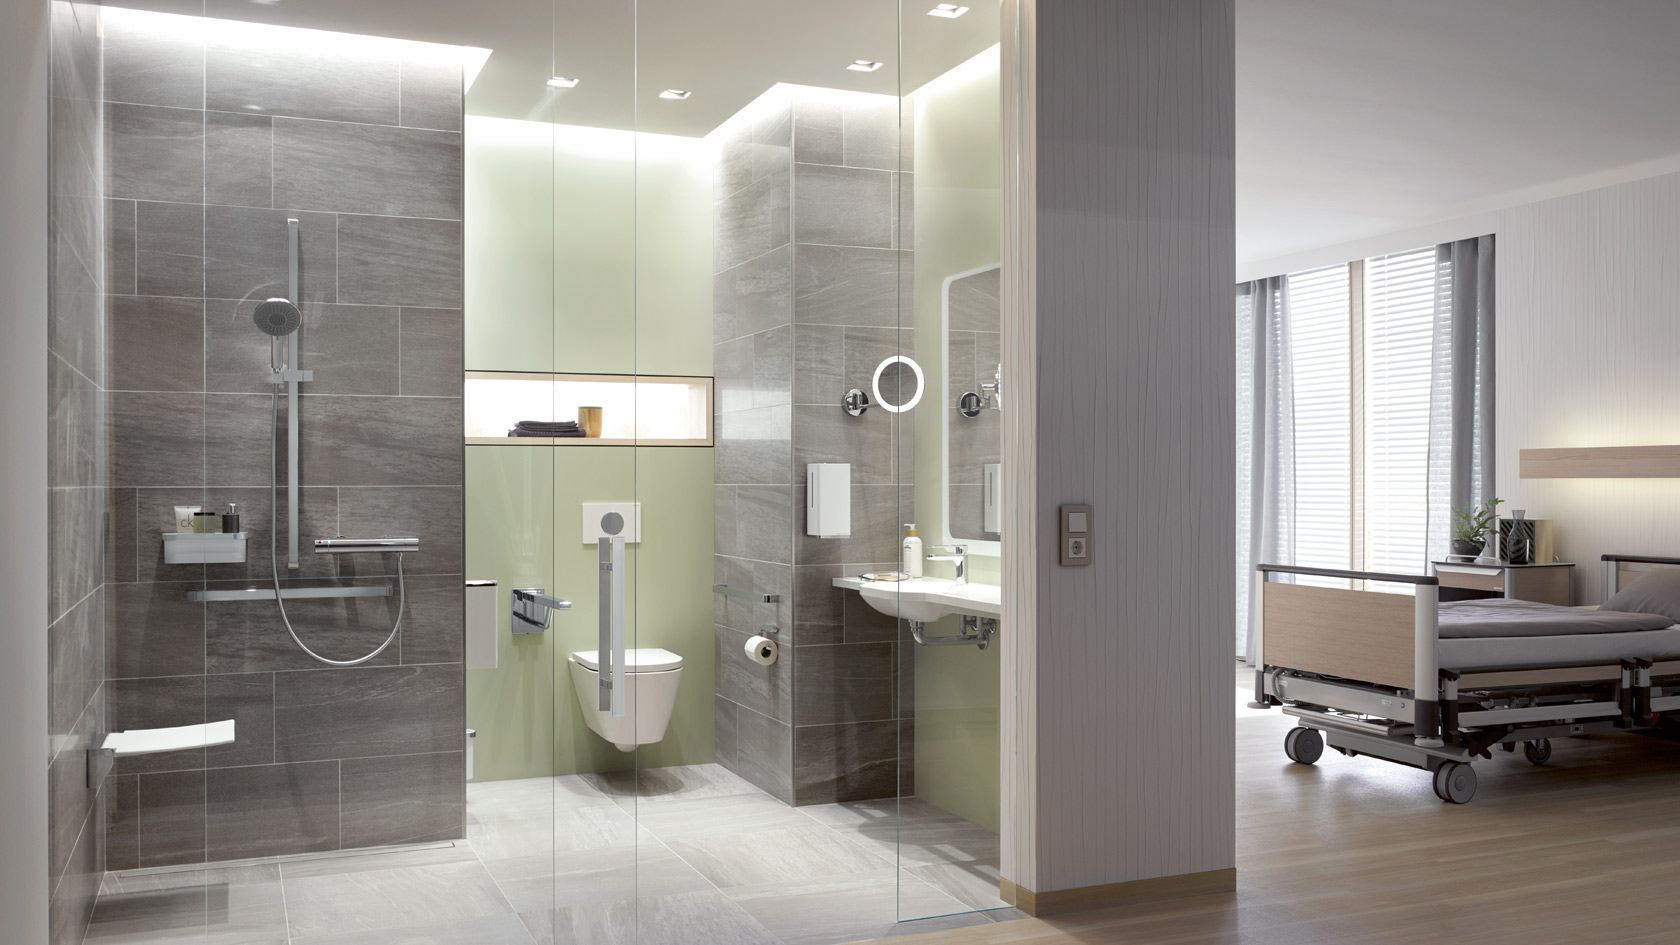 Bathroom Hewi System Solutions For Bathrooms And Sanitary Rooms